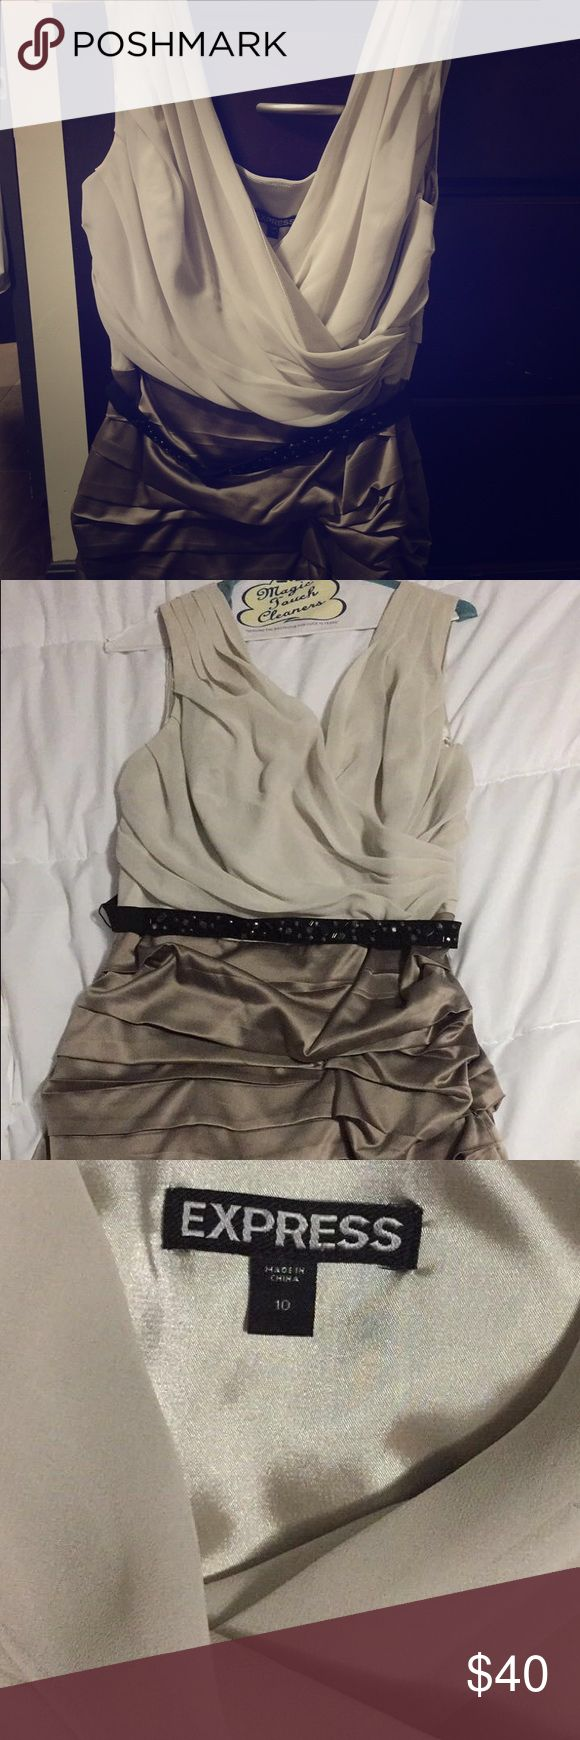 Cocktail dress Great for a wedding or night out! Cream colored top, gold/brown bottom half. In great condition! Express Dresses Midi